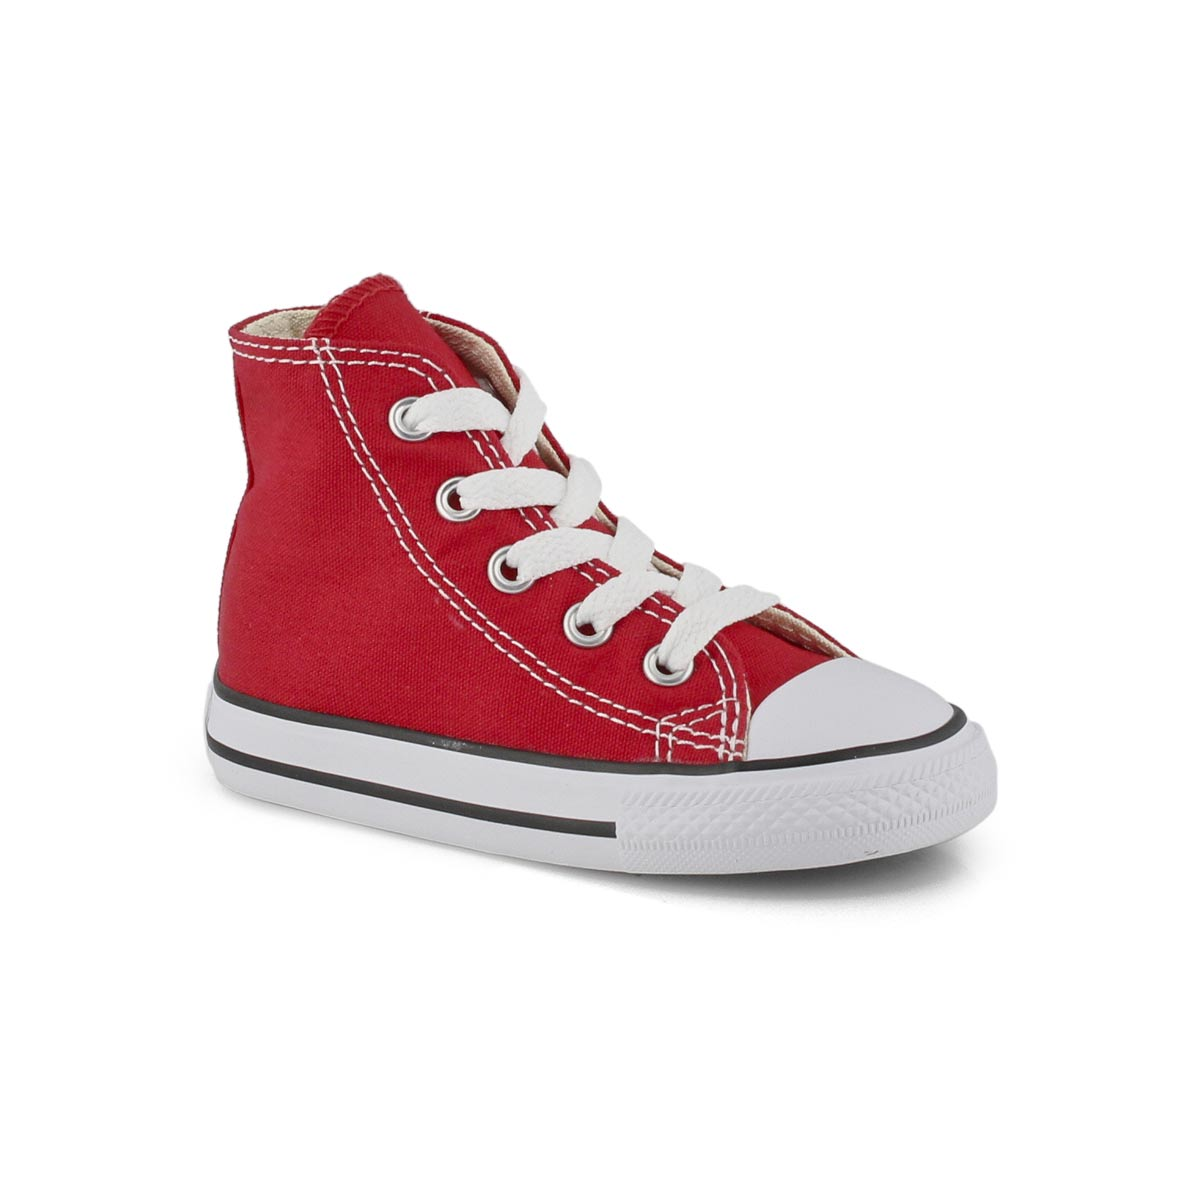 Infants' CHUCK TAYLOR ALL STAR red sneakers